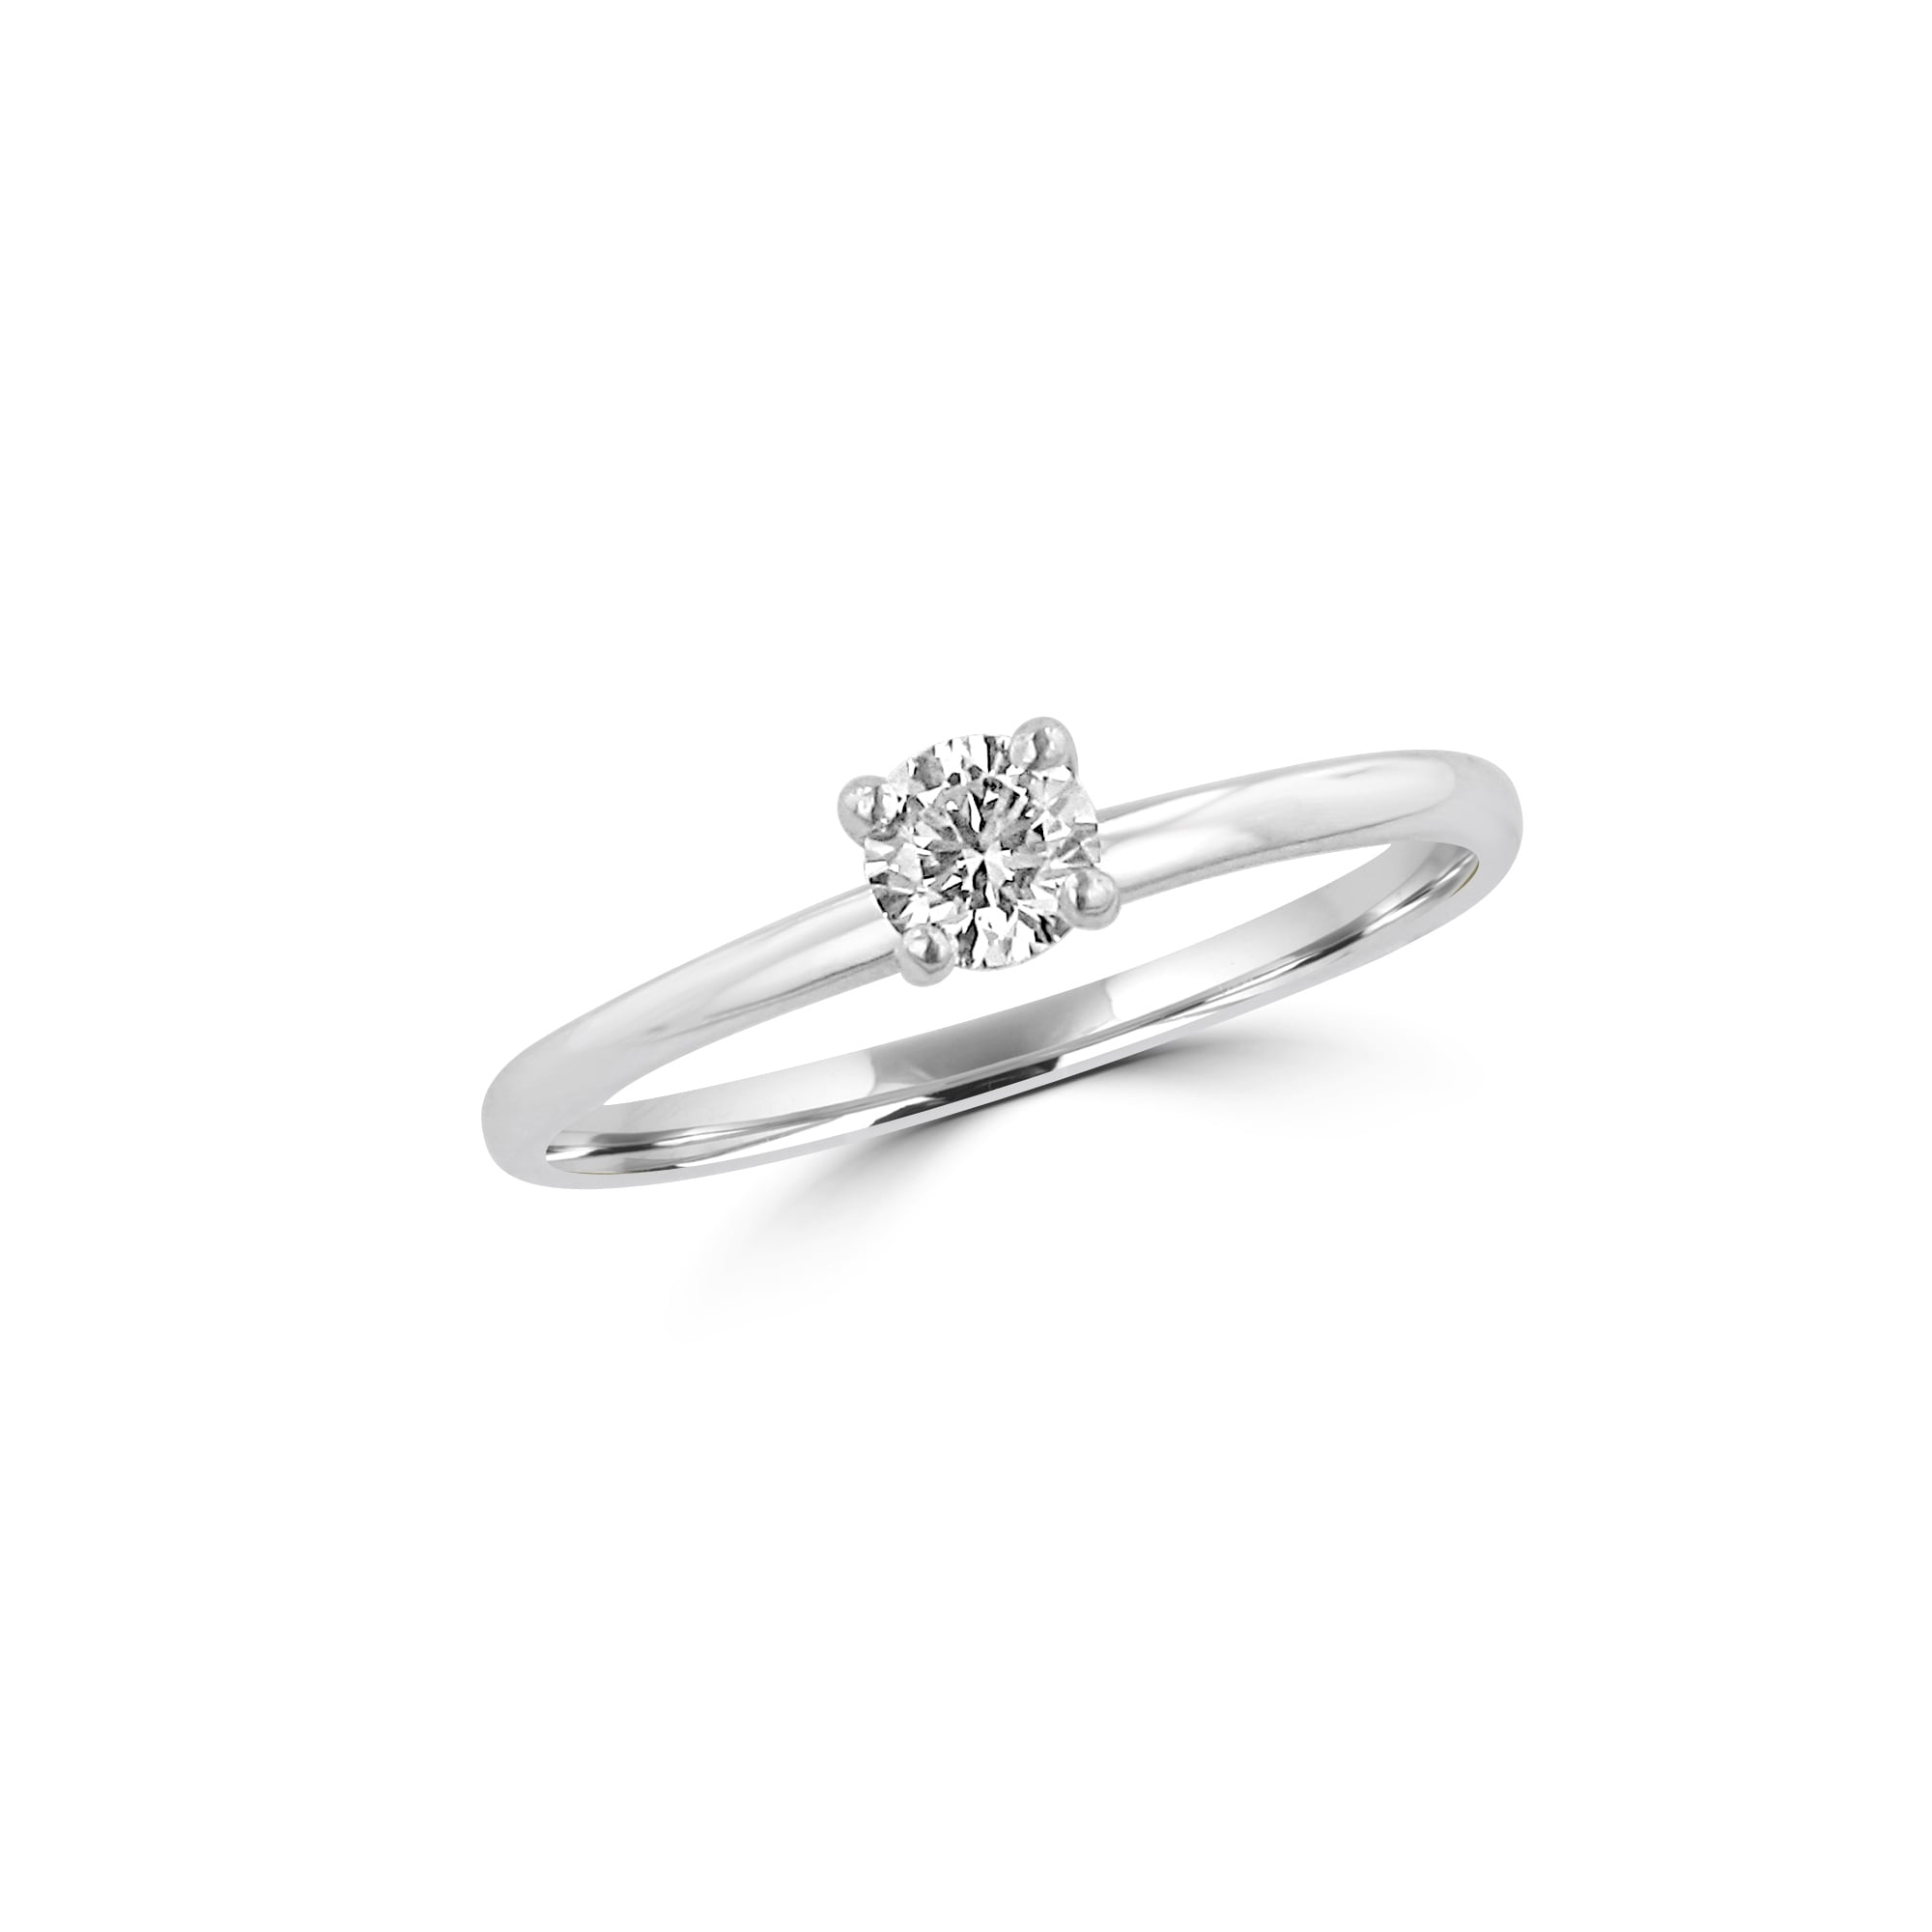 solitaire engagement diamond matelasse chanel jewelry ring womens jewellery platinum